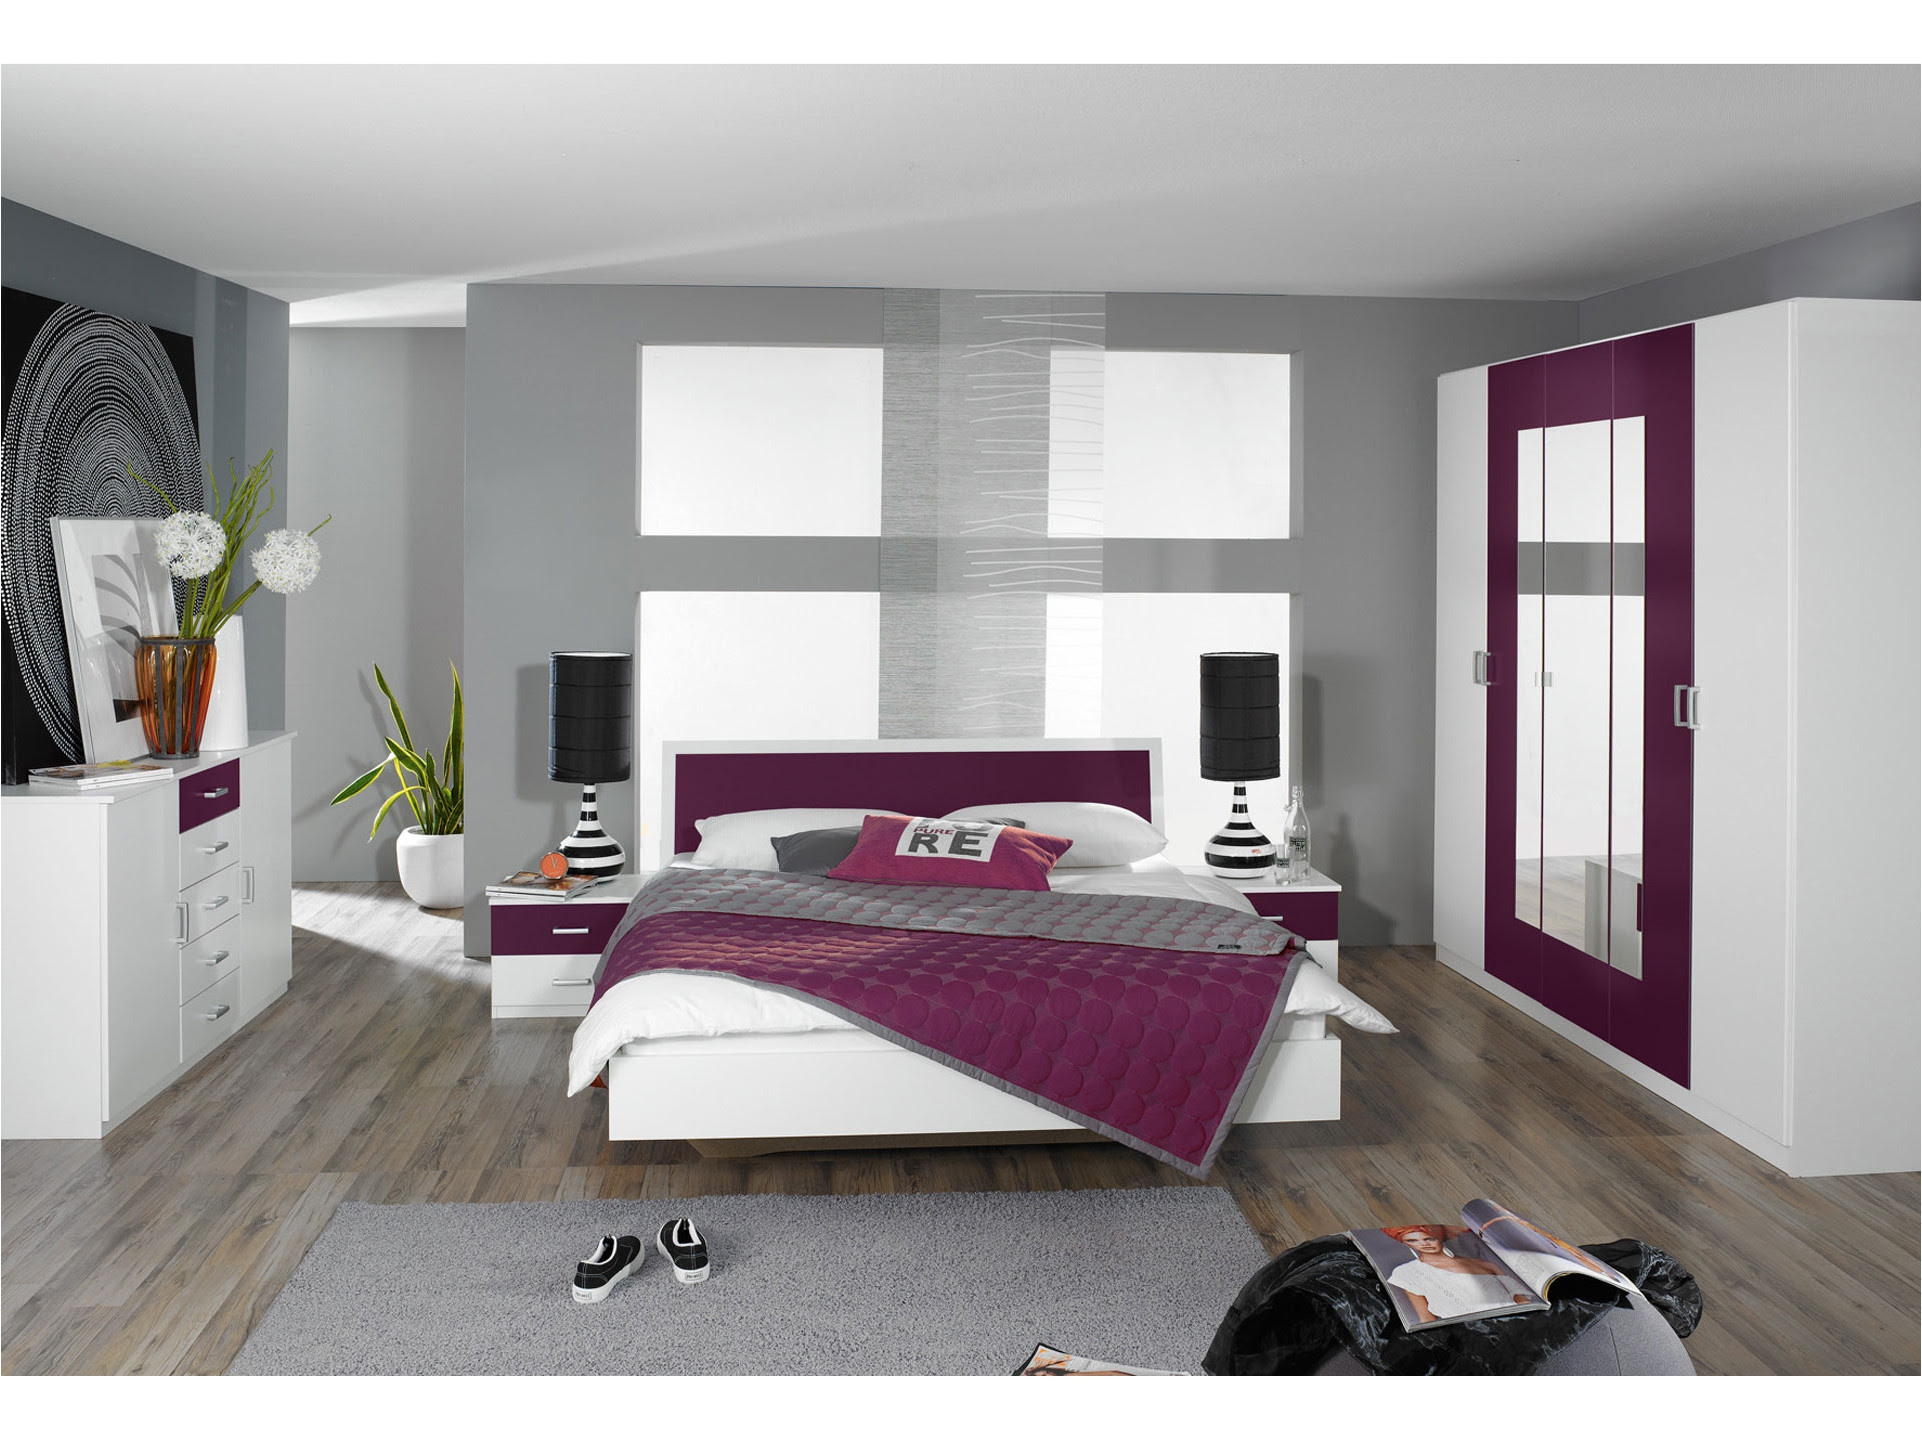 10 Of The Most Beautiful Bedroom Designs 2014